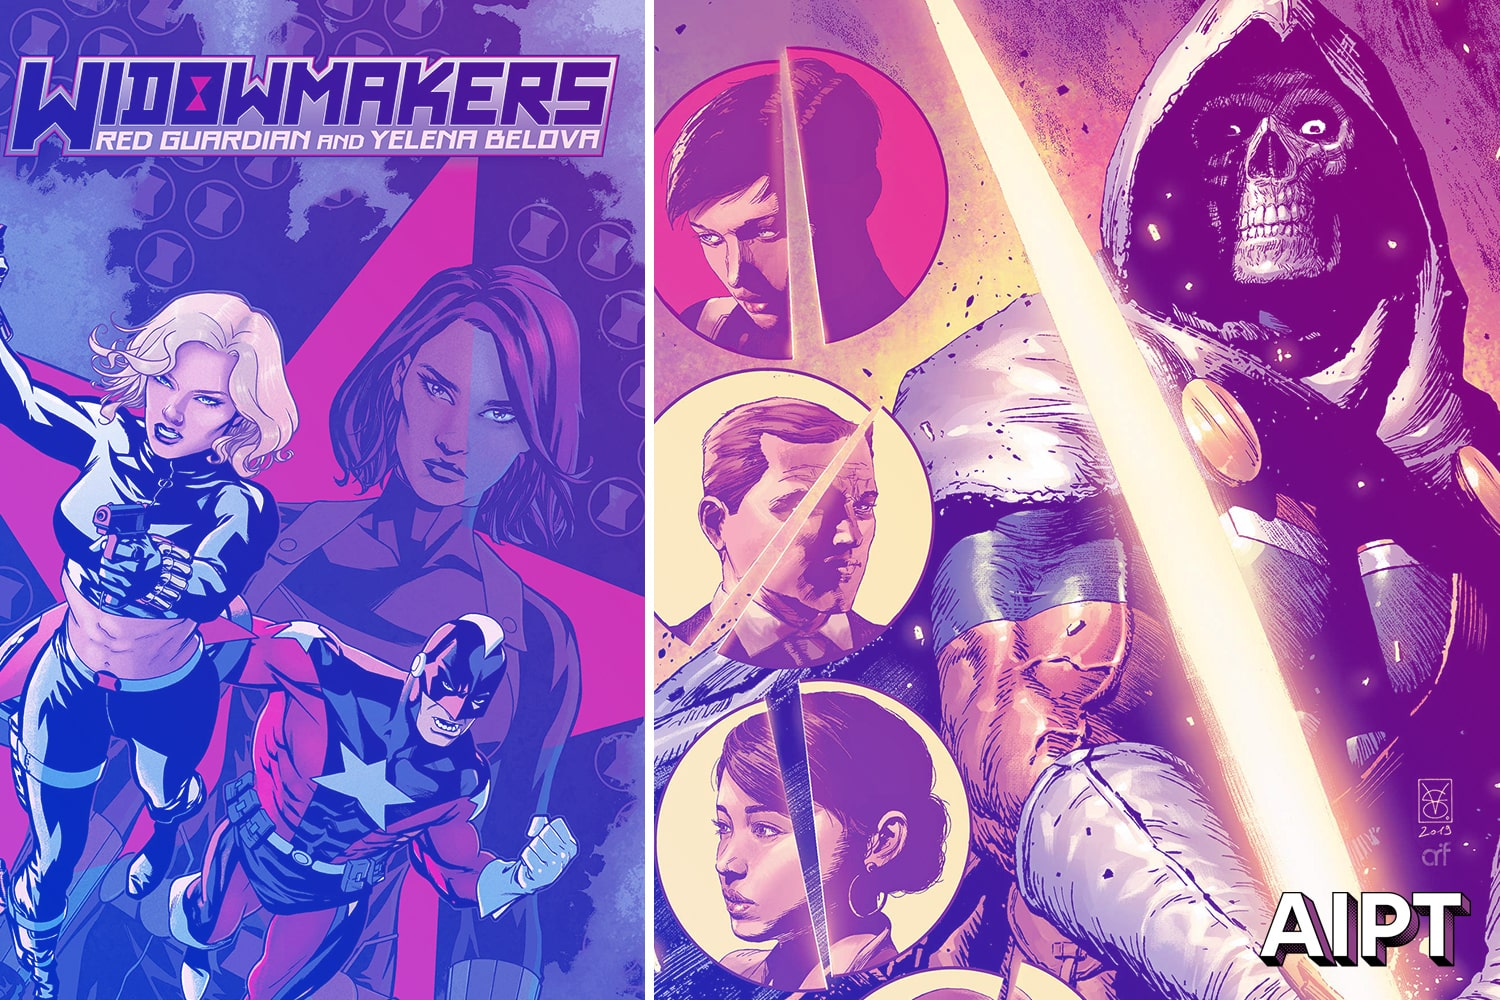 Marvel Comics sets November 2020 for 'Taskmaster' and 'Widowmakers' series